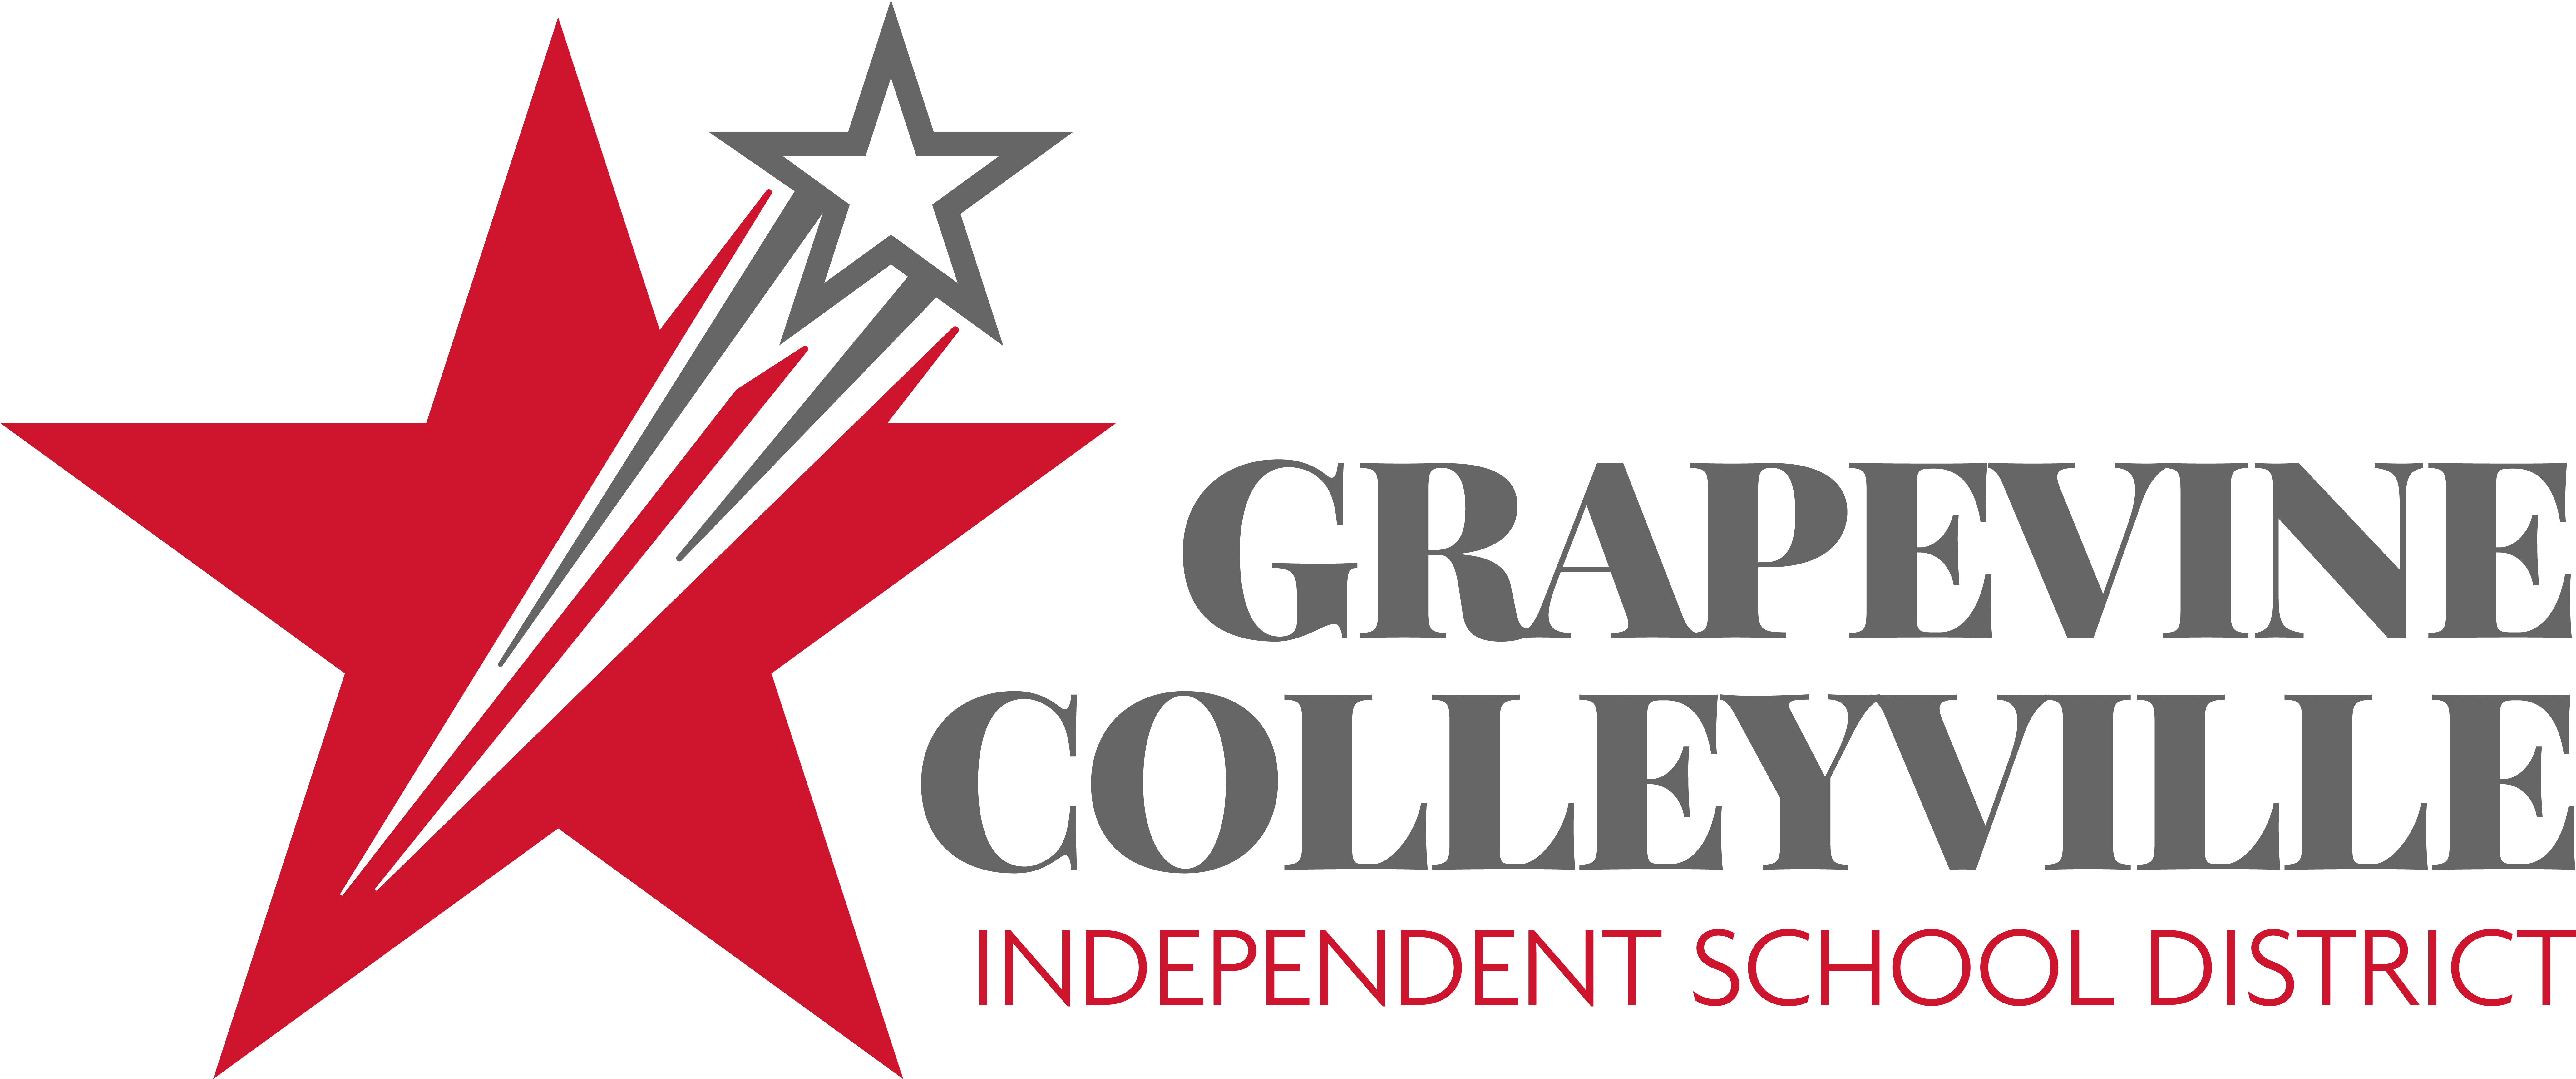 Grapevine-Colleyville ISD